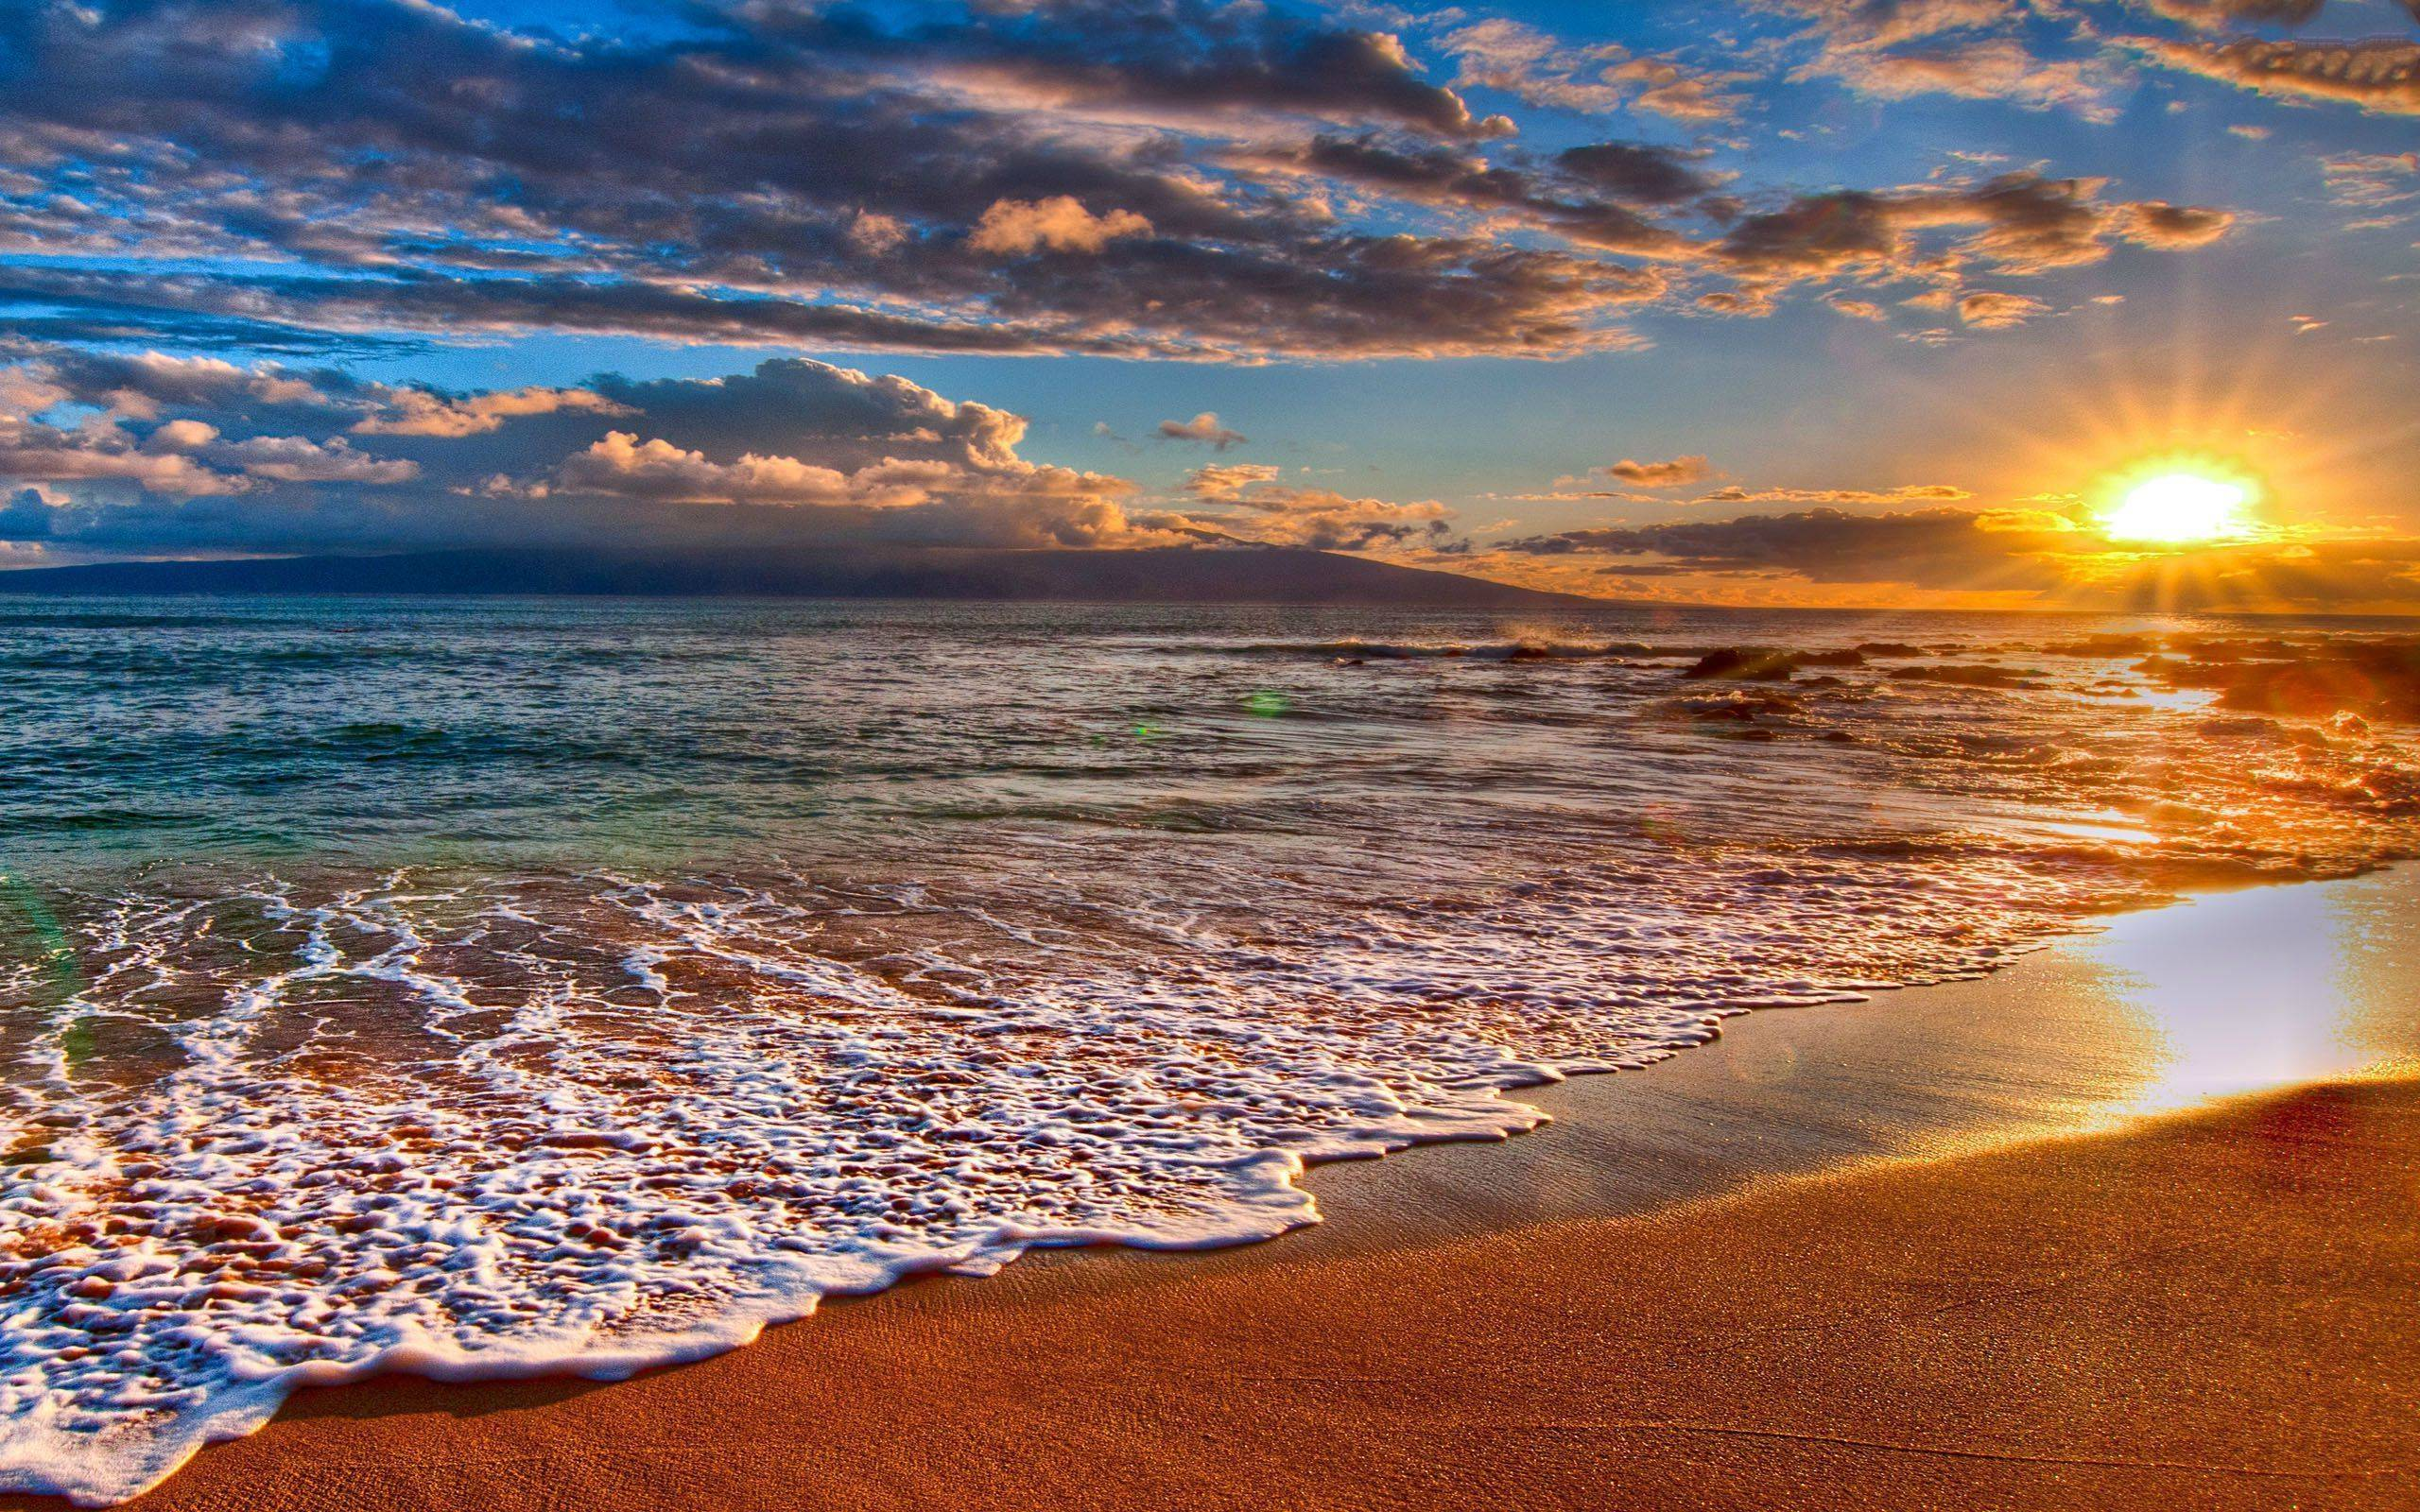 65 Ombre Sunset Beach Wallpapers   Download at WallpaperBro 2560x1600